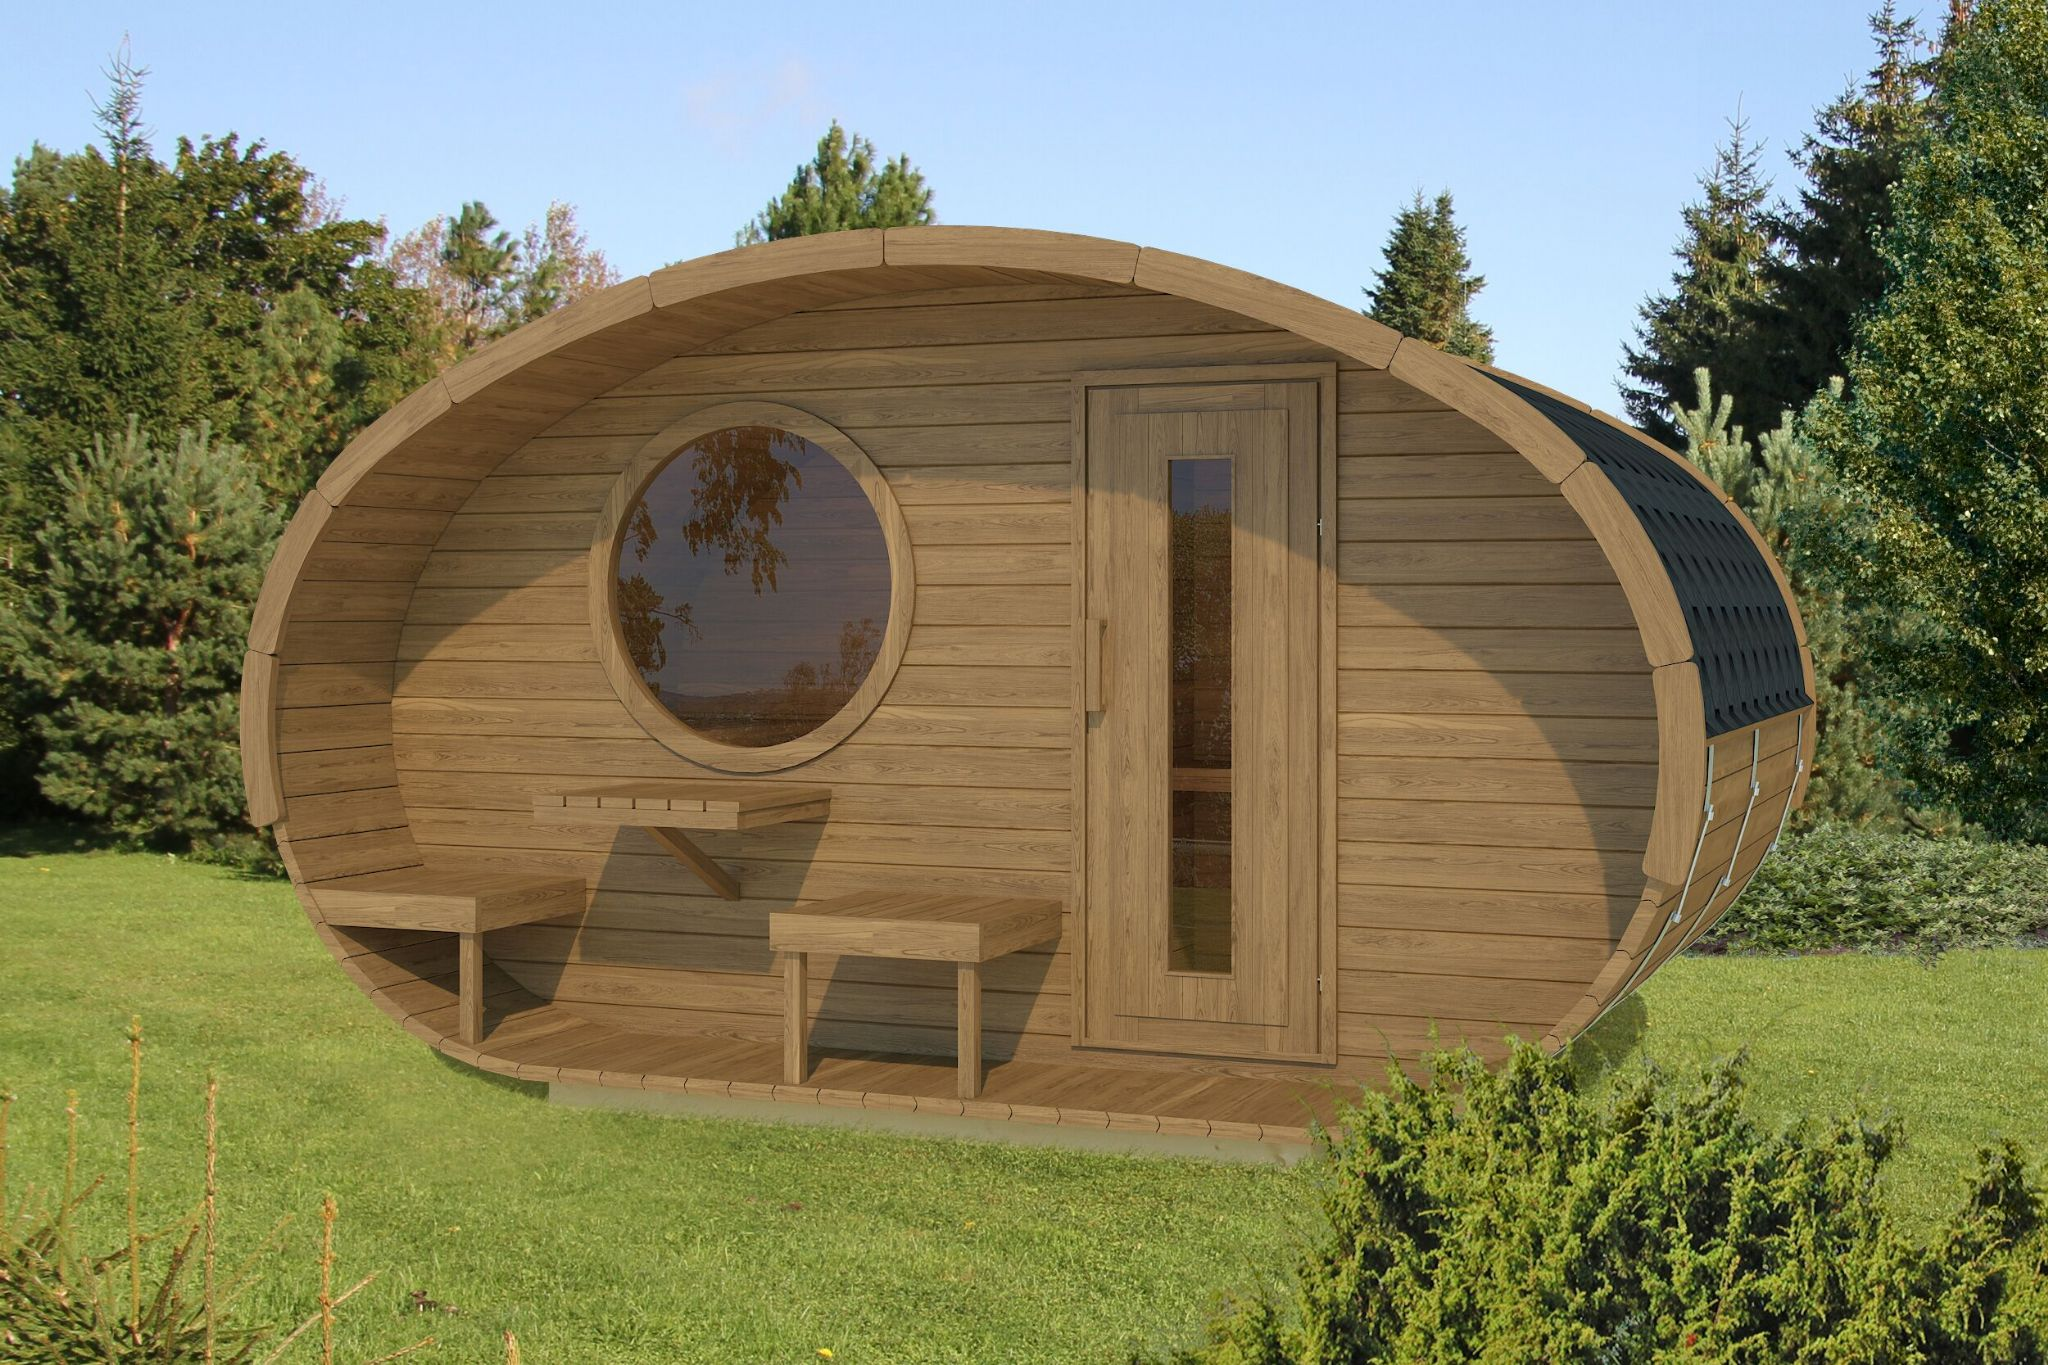 Mushroom sauna with terrace perfect for gatherings